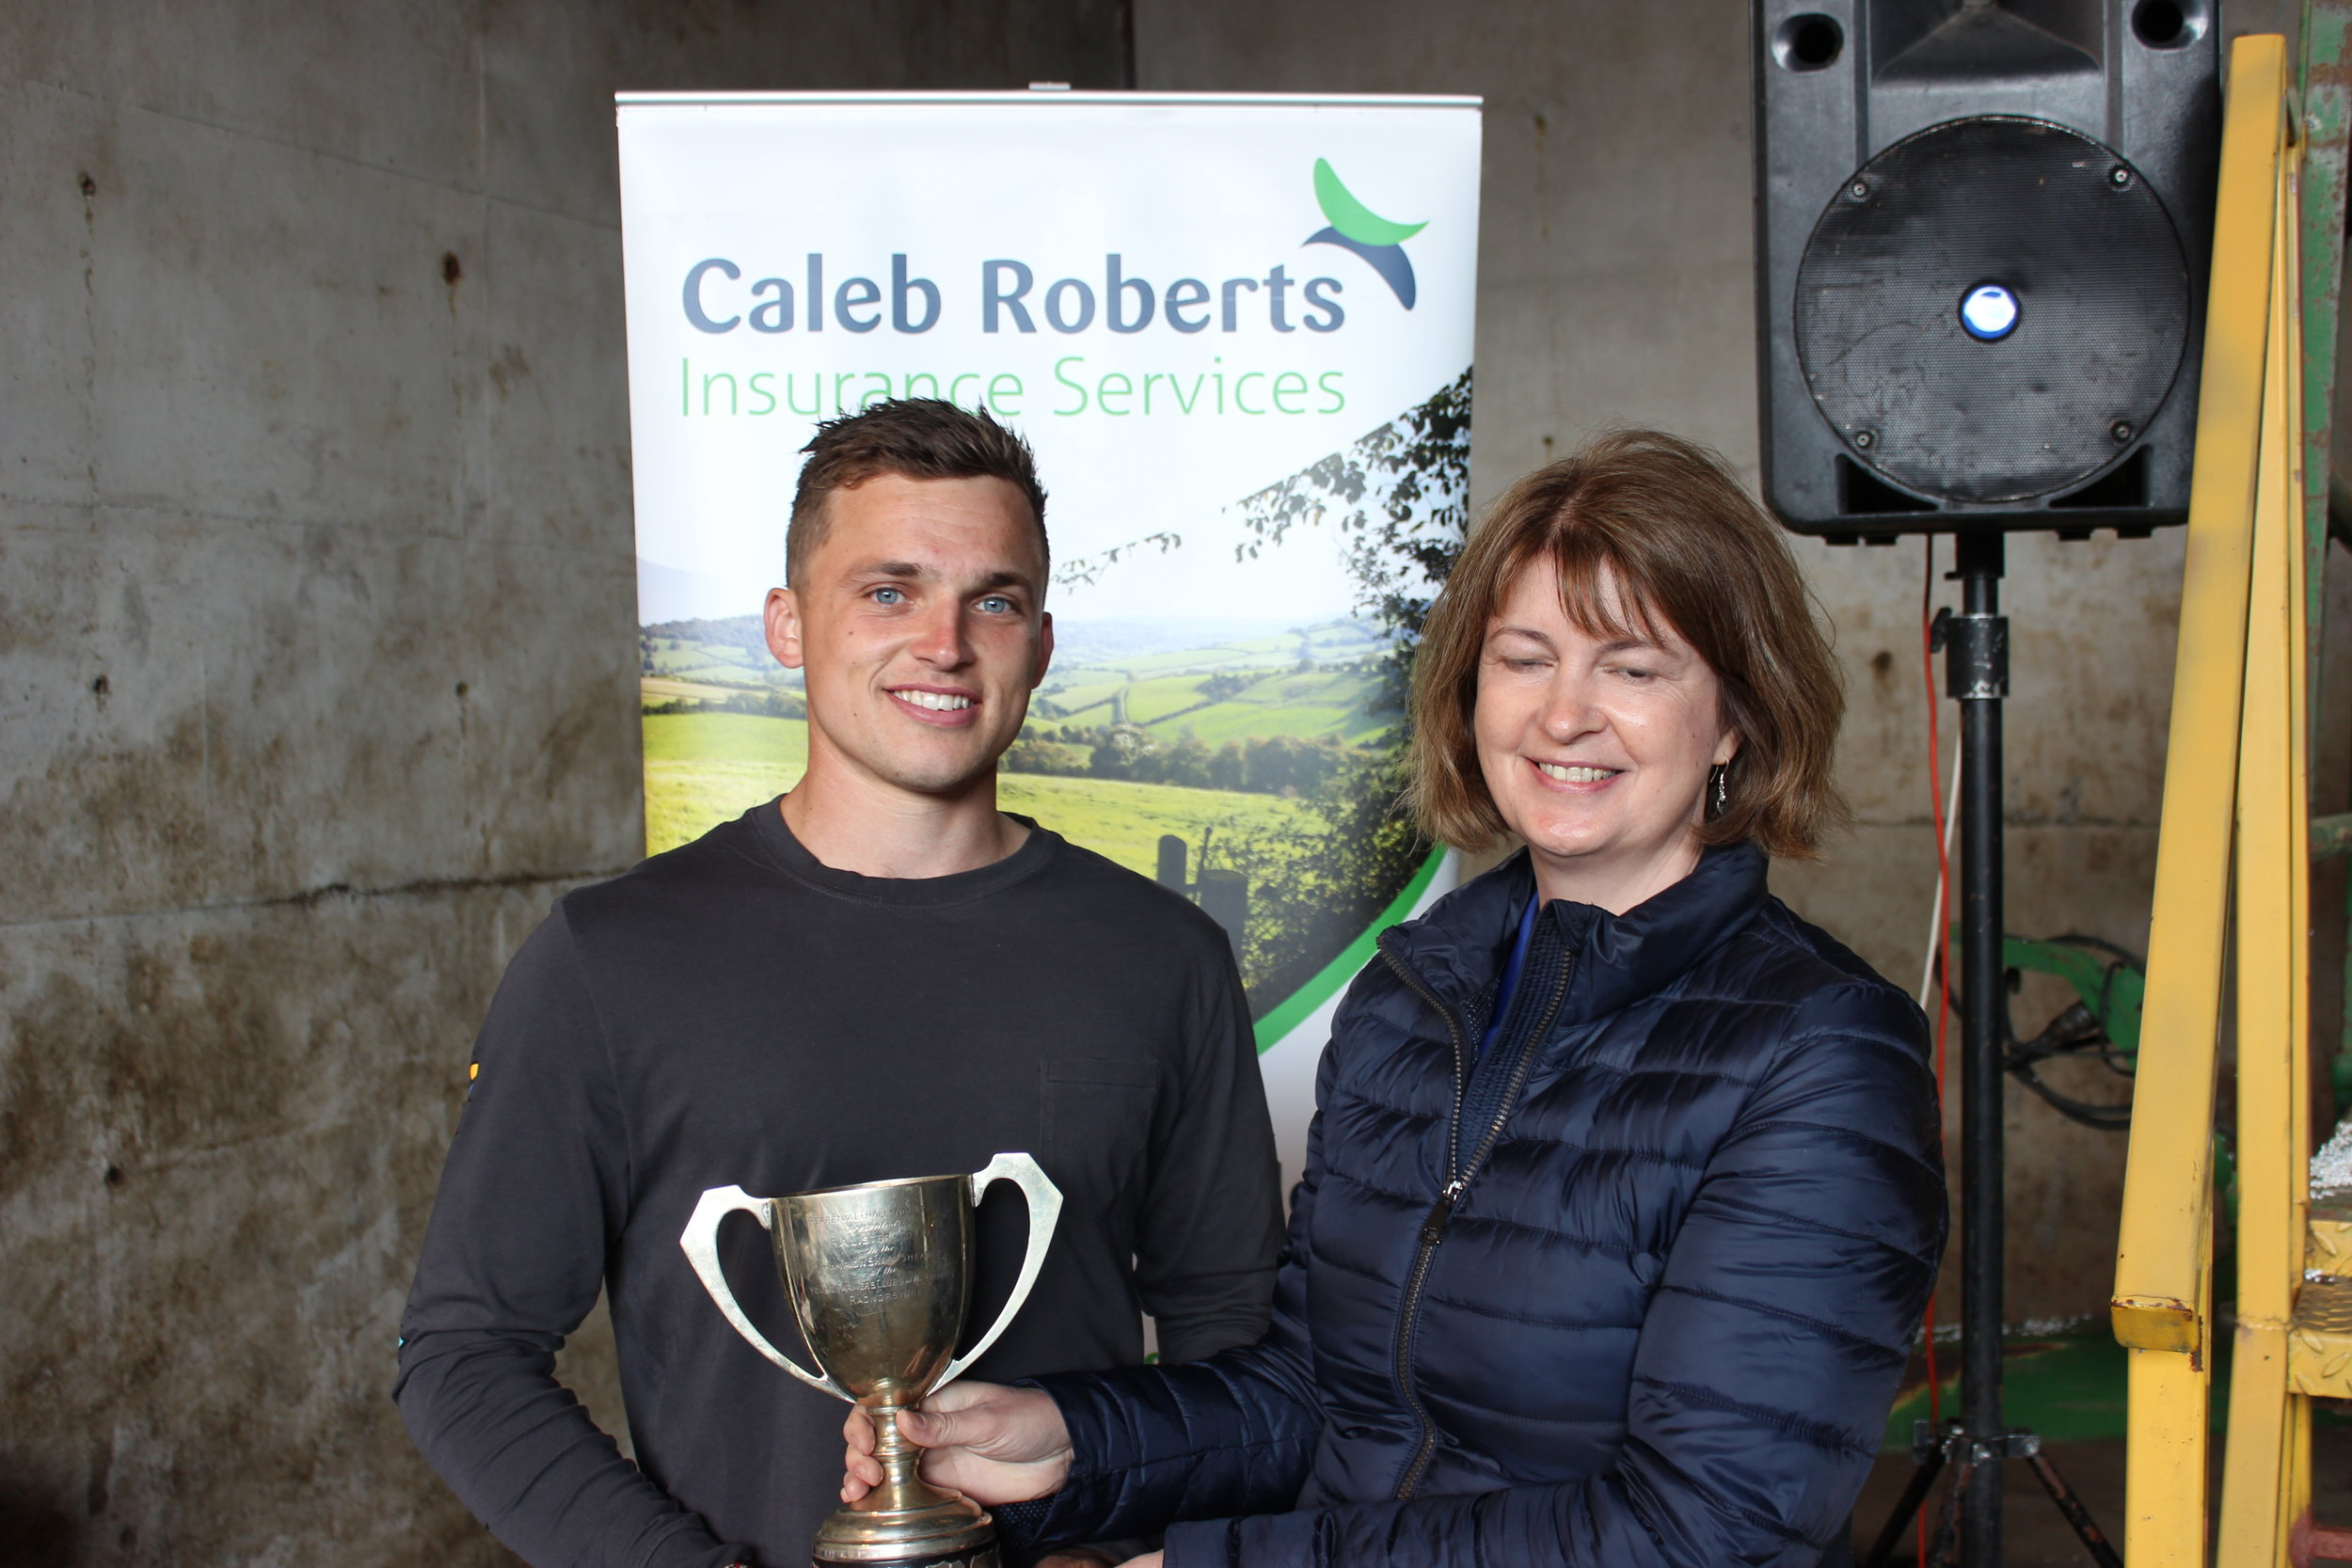 Aled Preece, Radnor Valley YFC - The RA Lister Trophy for Senior Shearing being presented by Rally Host, Debbie Price.